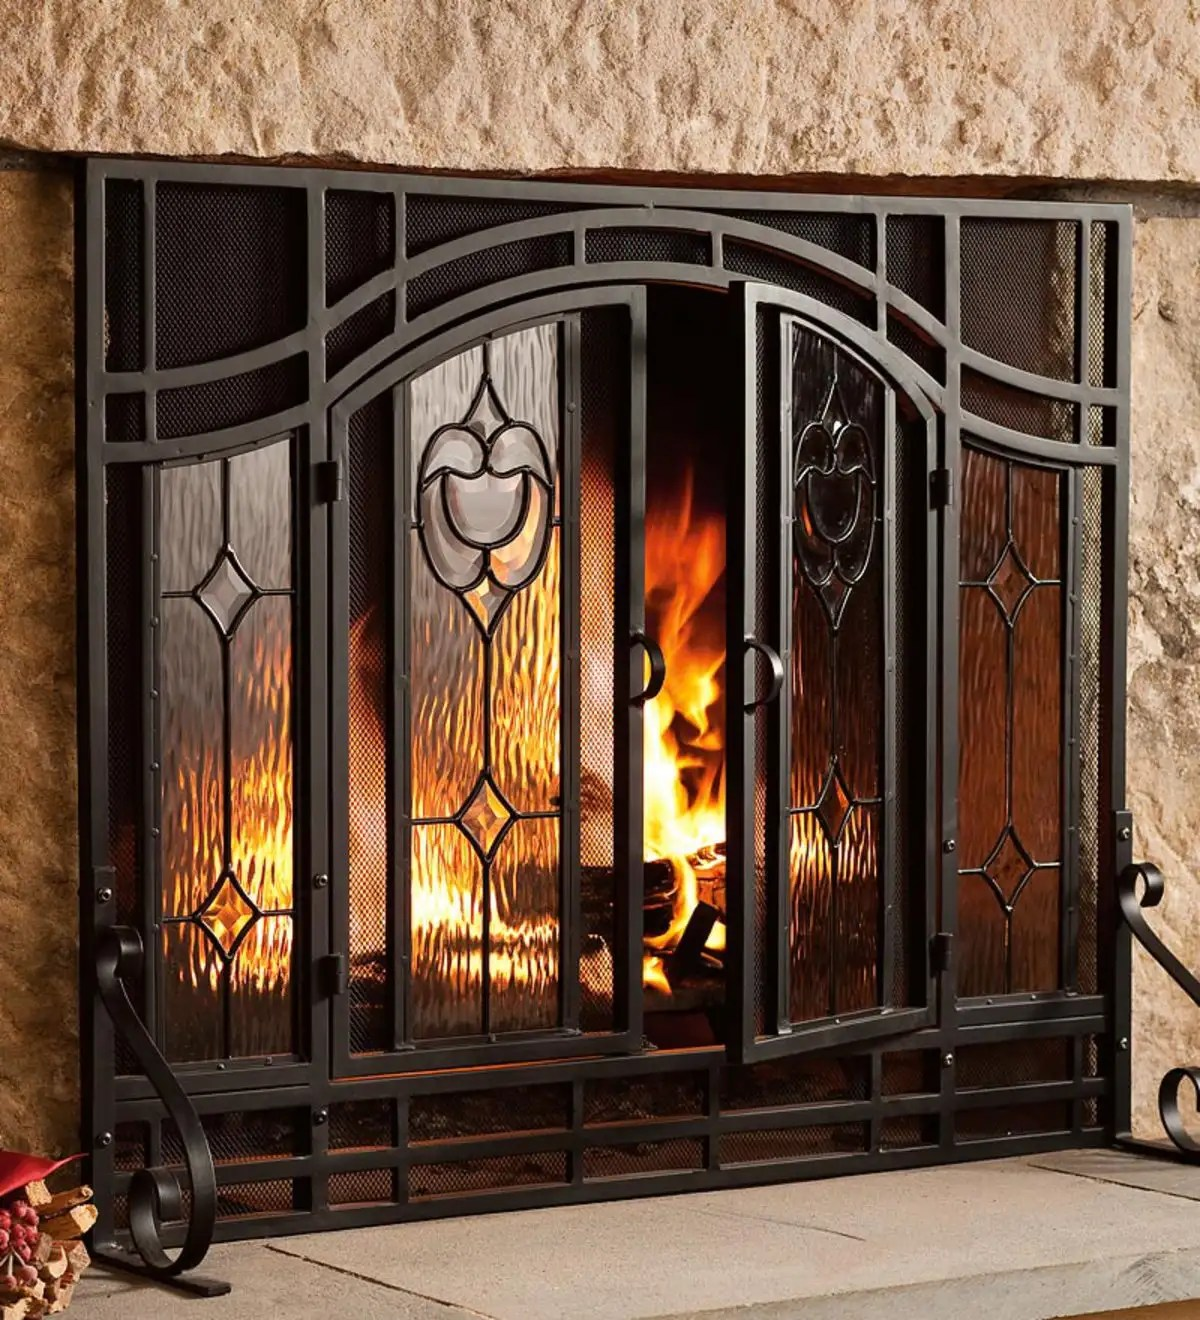 Small Two Door Fireplace Screen With Glass Floral Panels